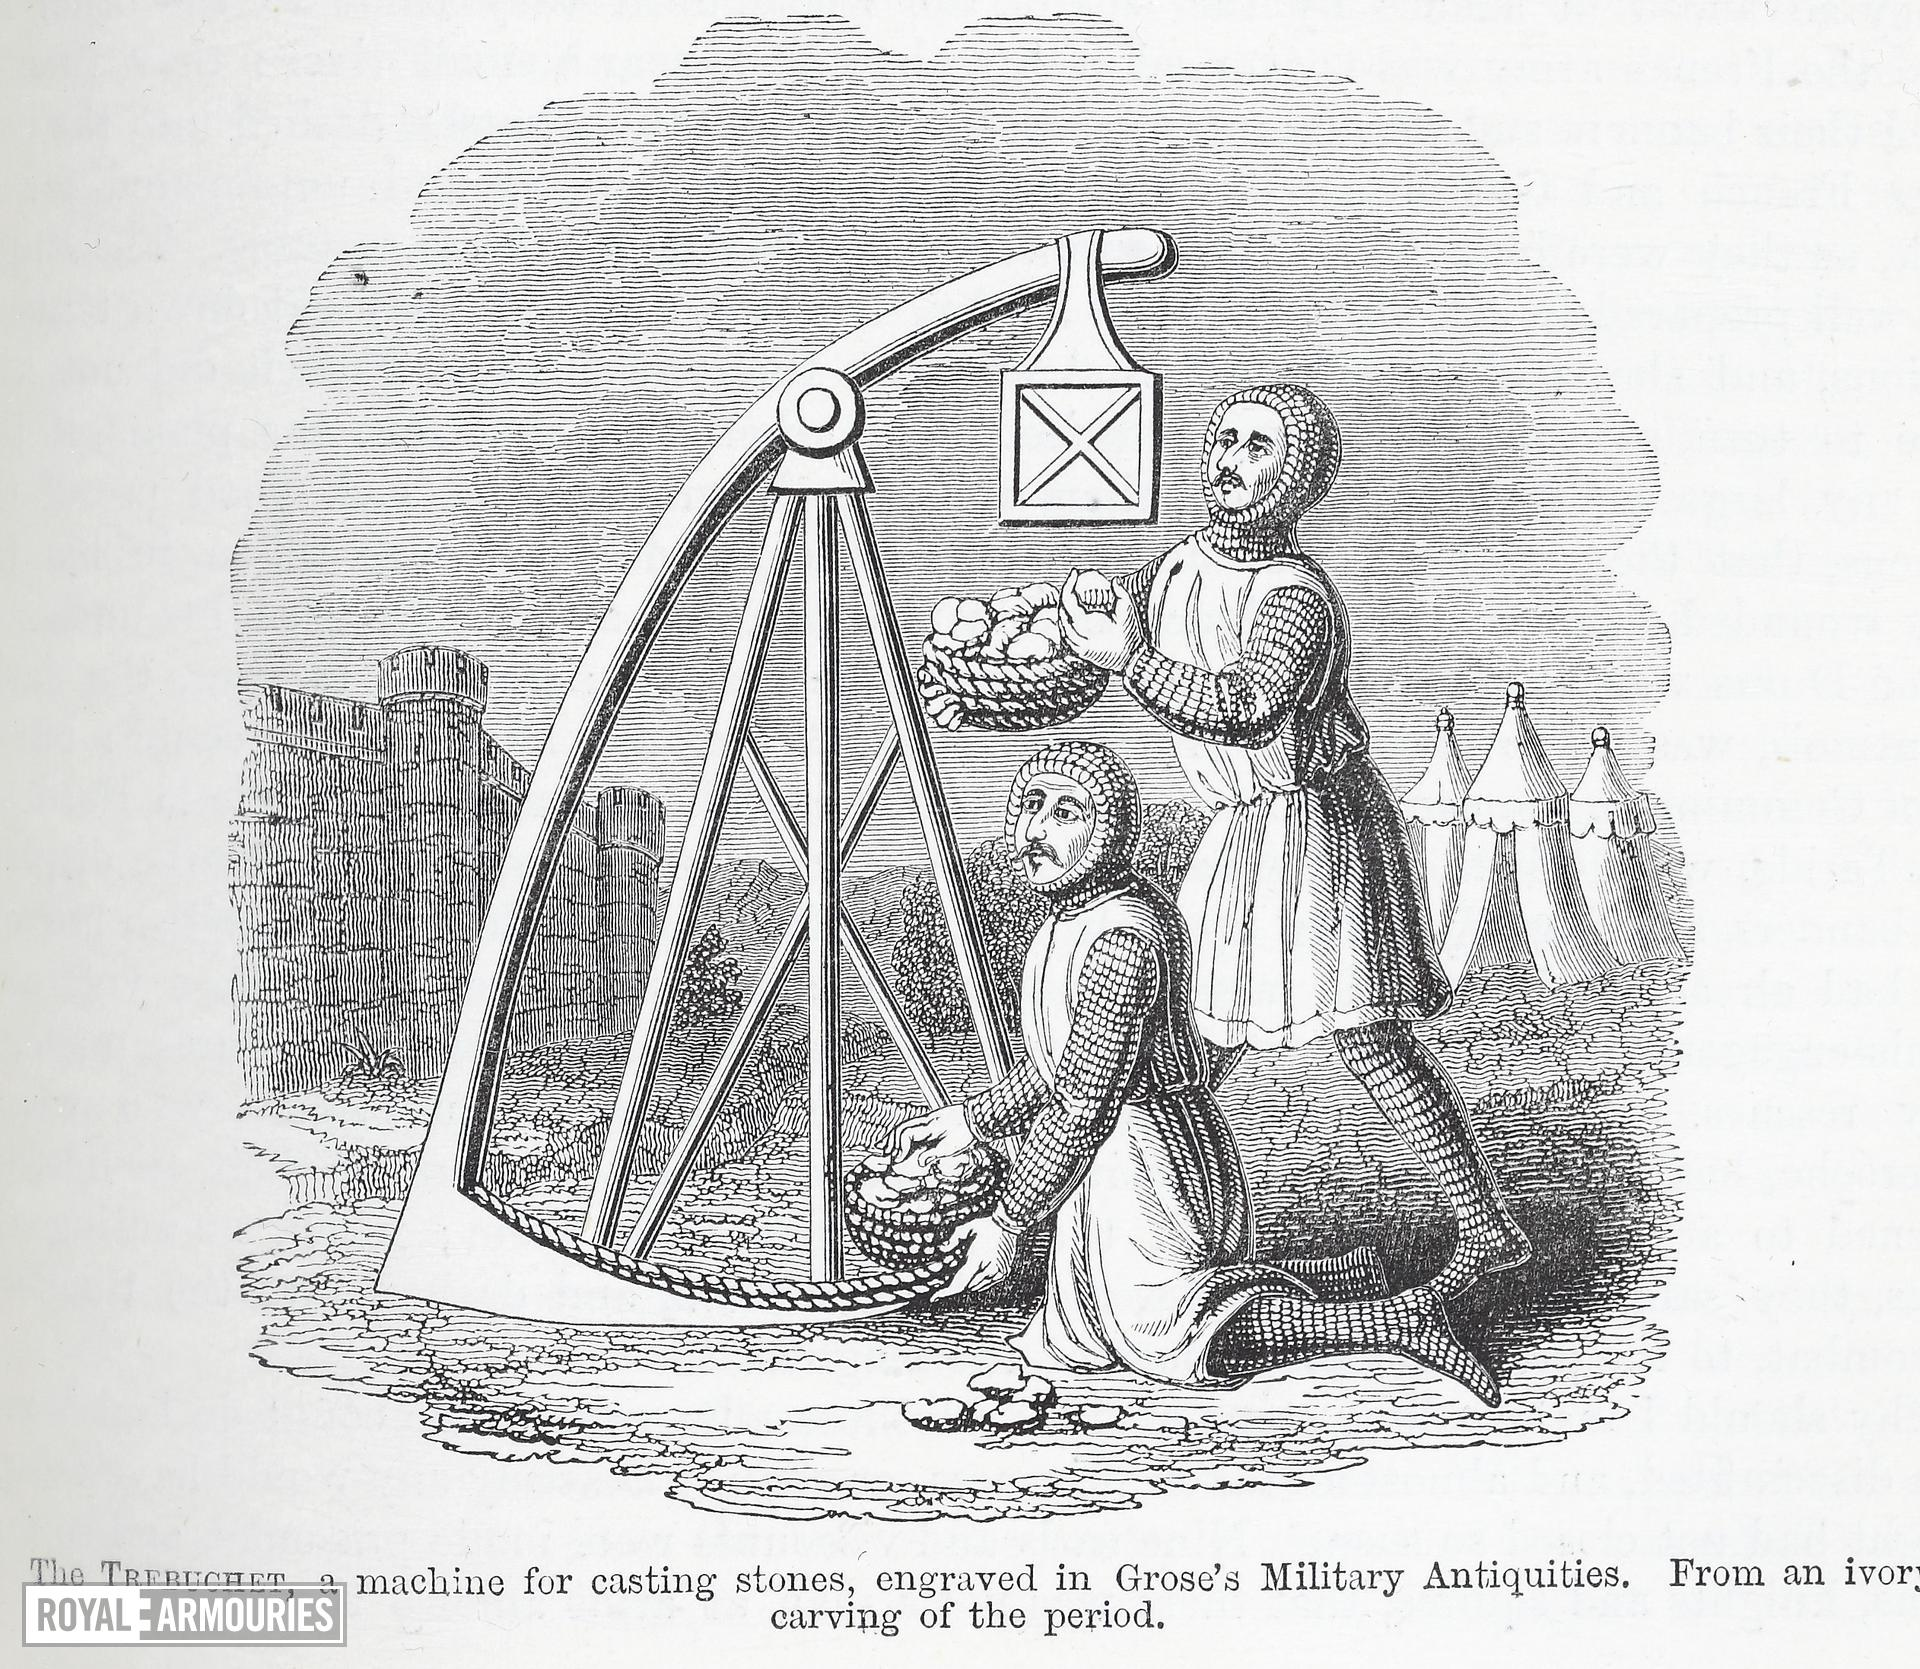 Illustration entitled,  'The Trebuchet, a machine for casting stones, engraved in Grose's Military Antiquities. From an ivory carving of the period.' page 133, taken from, ' Chronicles of England, France, Spain, and the adjoining countries, from the latter part of the reign of Edward II to the coronation of Henry IV, Volume 1,' by Sir John Froissart and Thomas Johnes, published by George Routledge & Sons, The Broadway, Ludgate, New York, 1868.